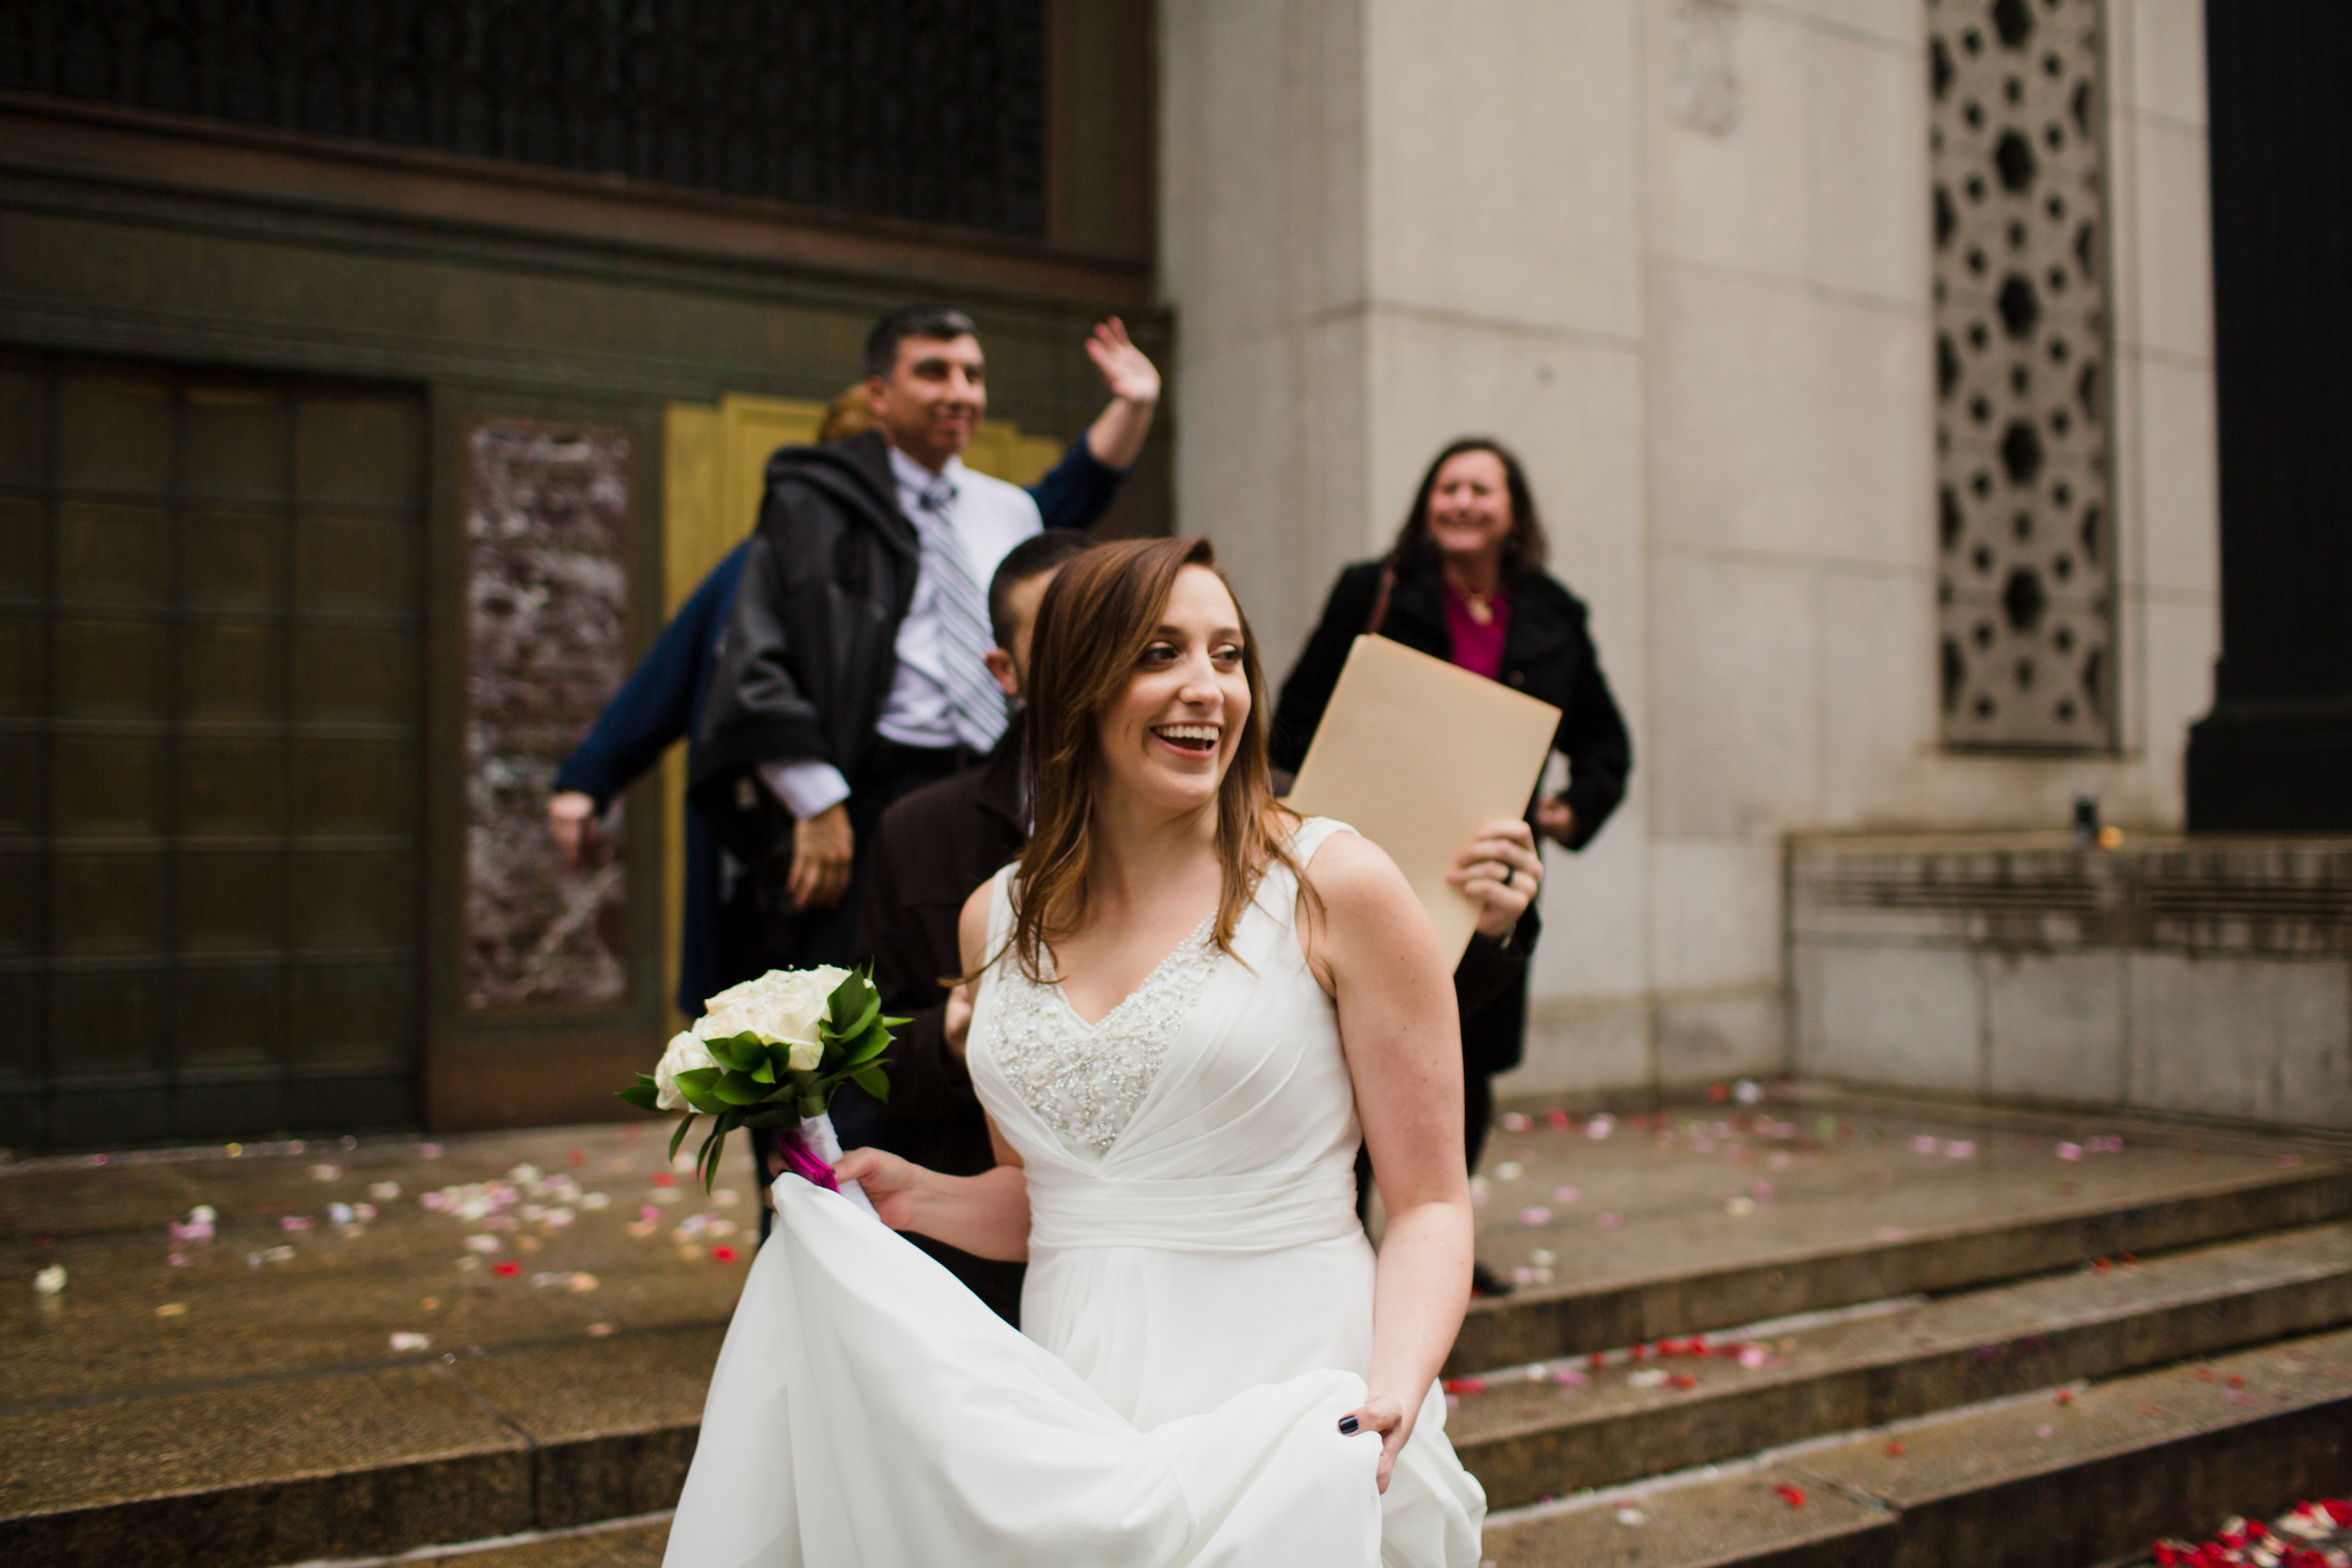 New-York-City-Elopement-Photos-024.JPG